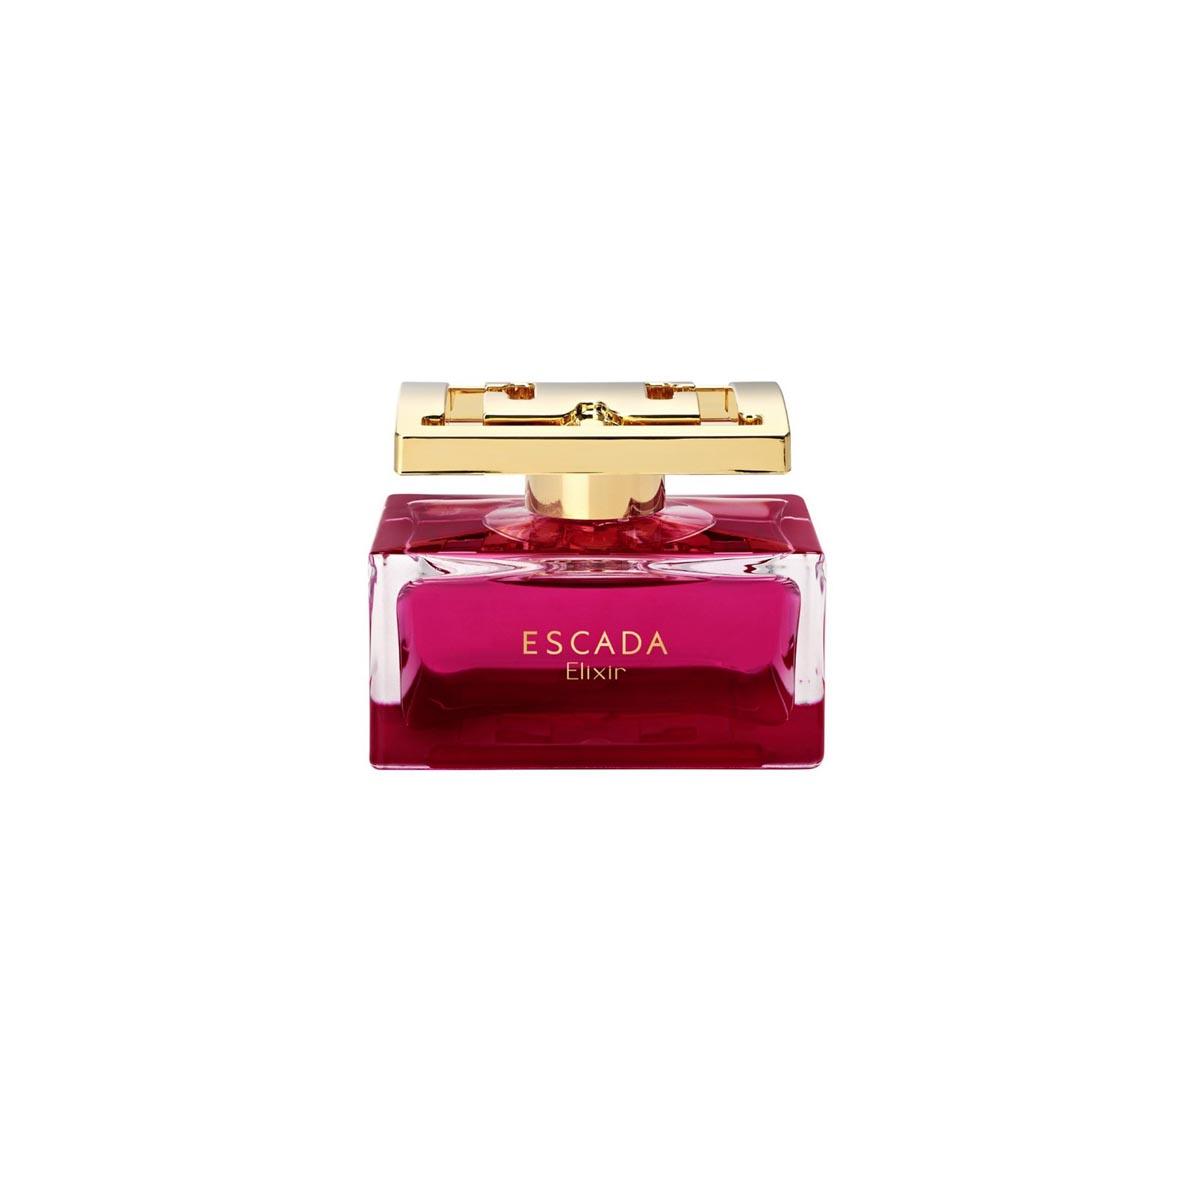 Escada especially elixir eau de parfum 30ml vaporizador